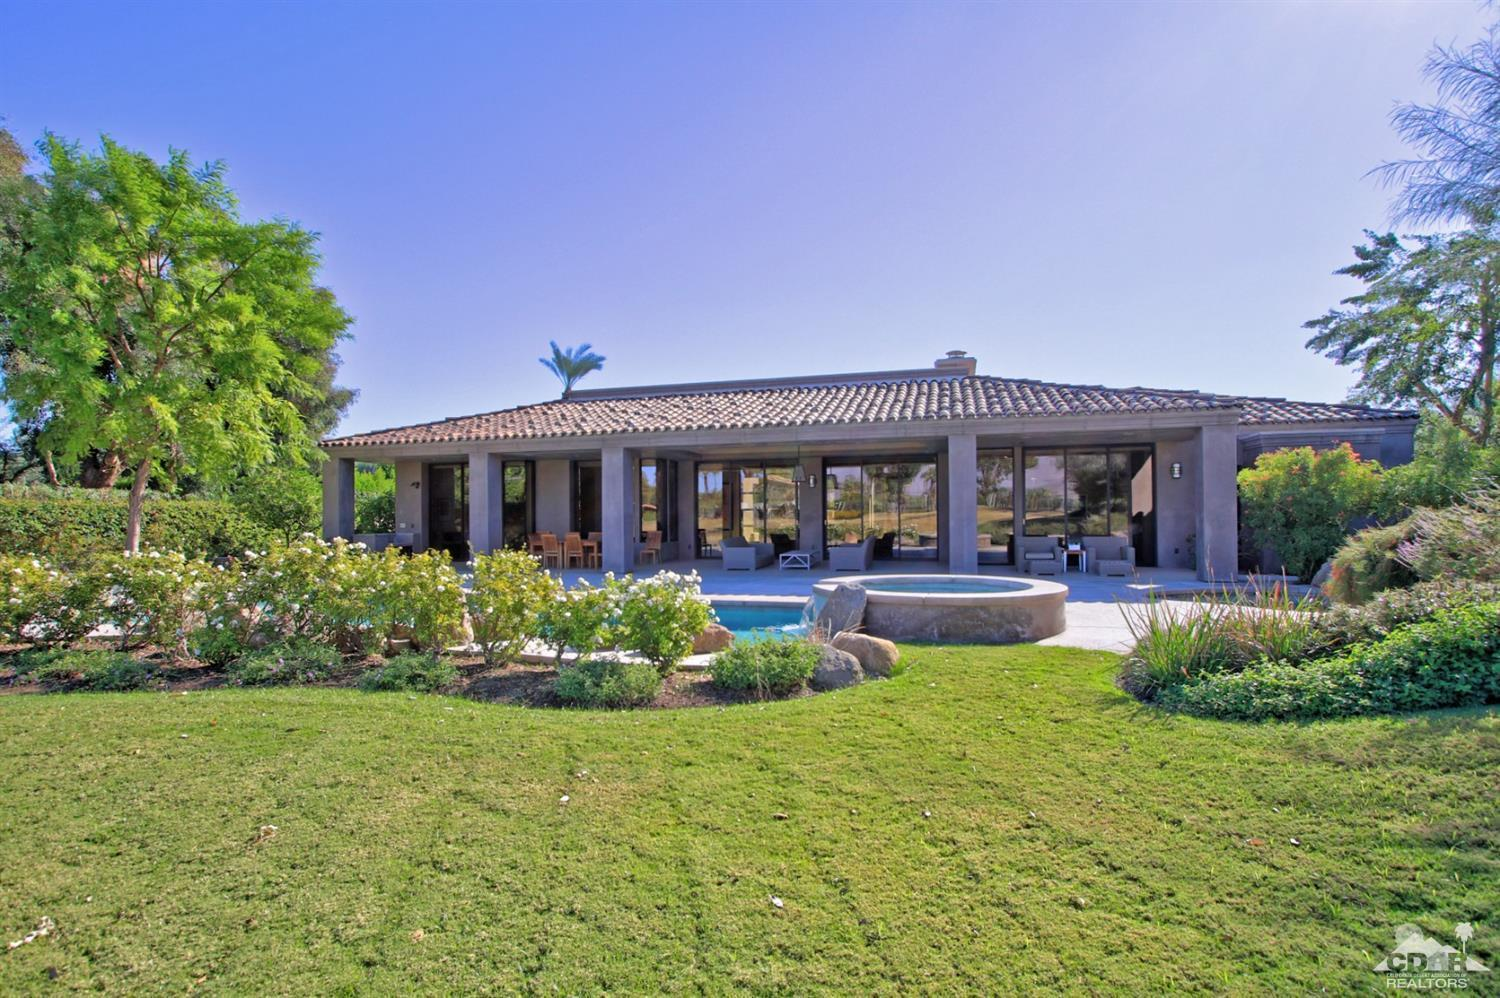 California contemporary custom built home by Stoker Construction. The finest finishing touches. West facing on the 14th fairway with mountain views on Tamarisk CC.Turn key furnished! No HOA